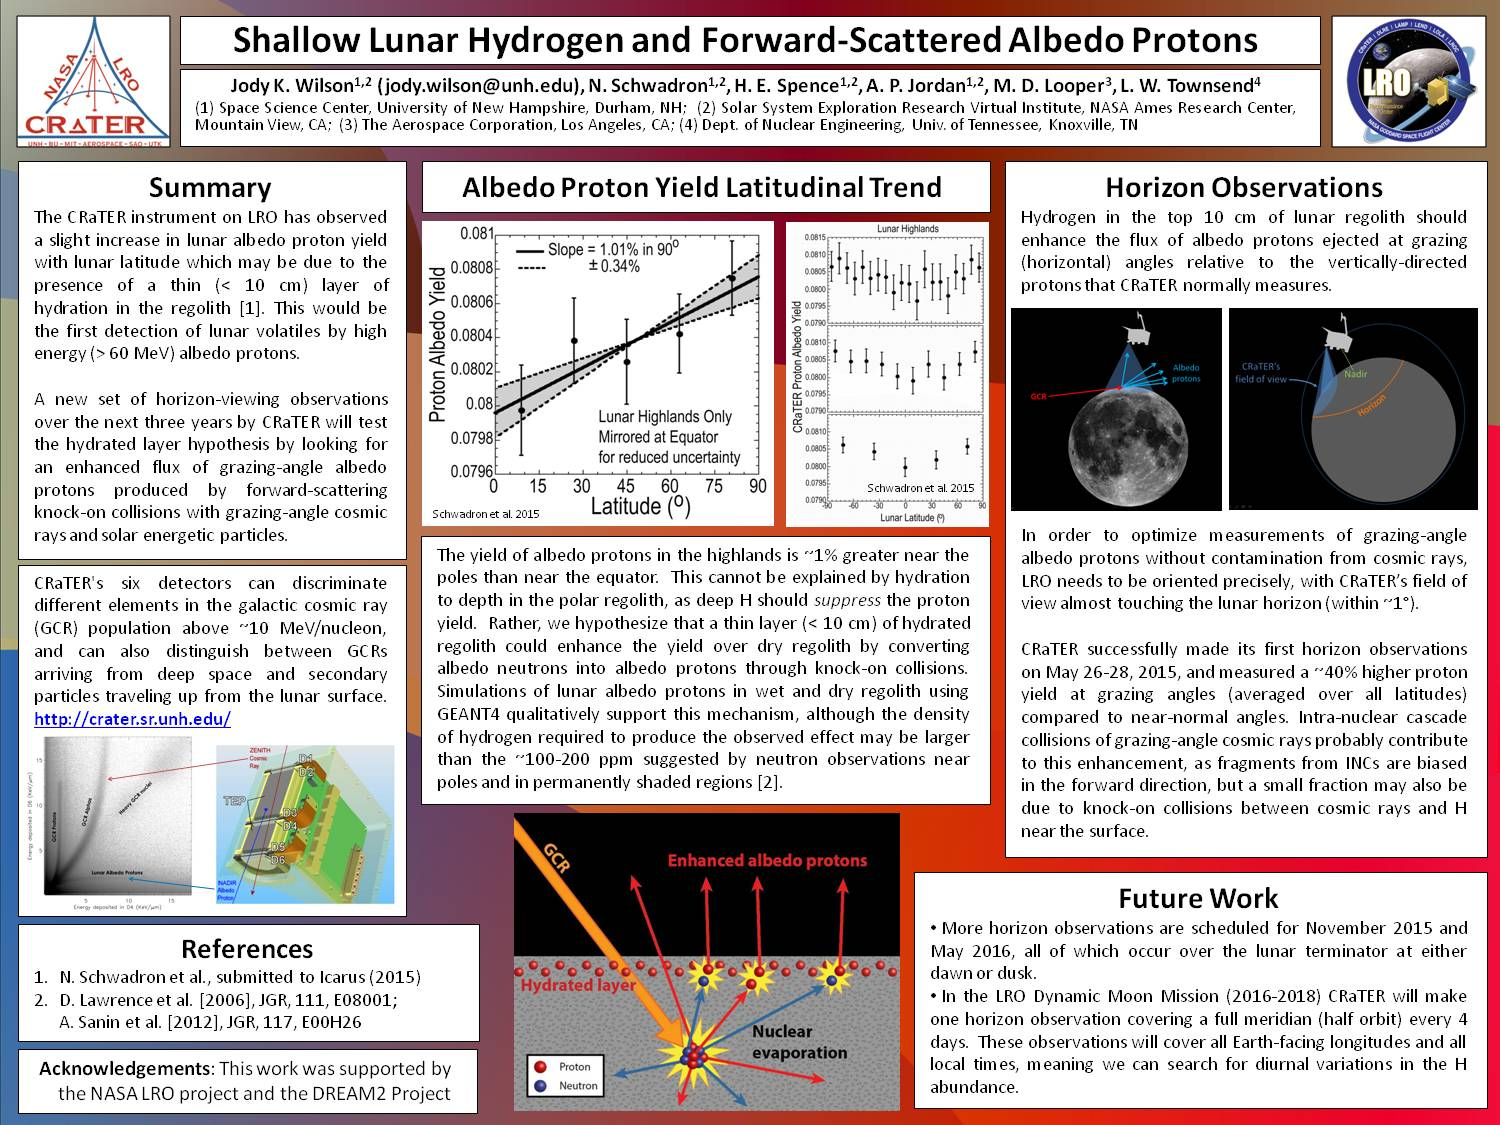 Shallow Lunar Hydrogen And Forward-Scattered Albedo Protons by jkwilson